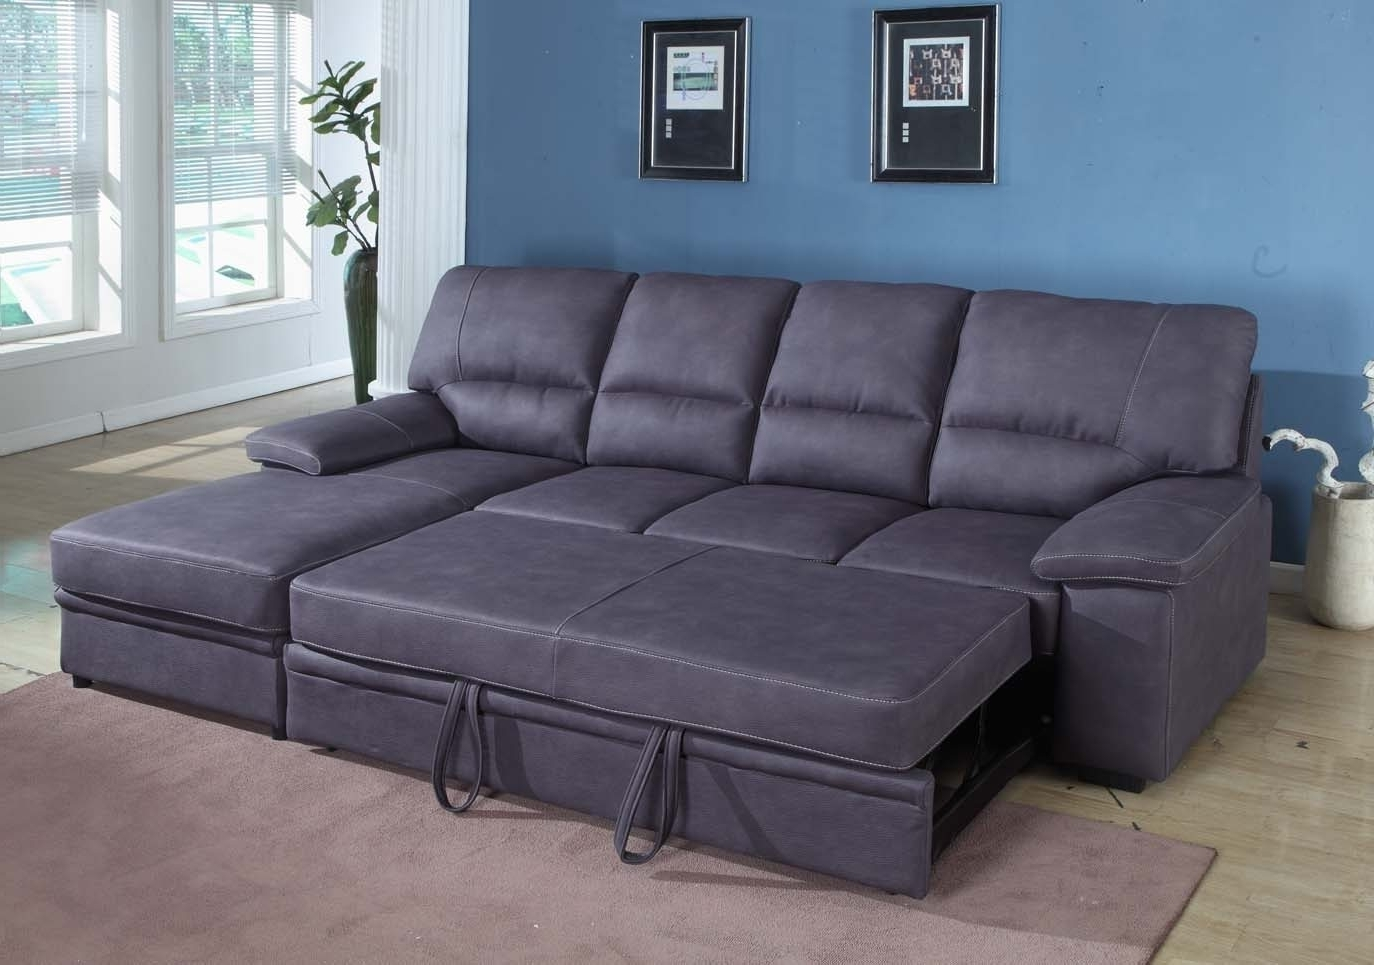 Most Recent Chaise Sectionals Inside Brilliant Sectional Sleeper Sofa With Chaise Cool Living Room (View 9 of 15)